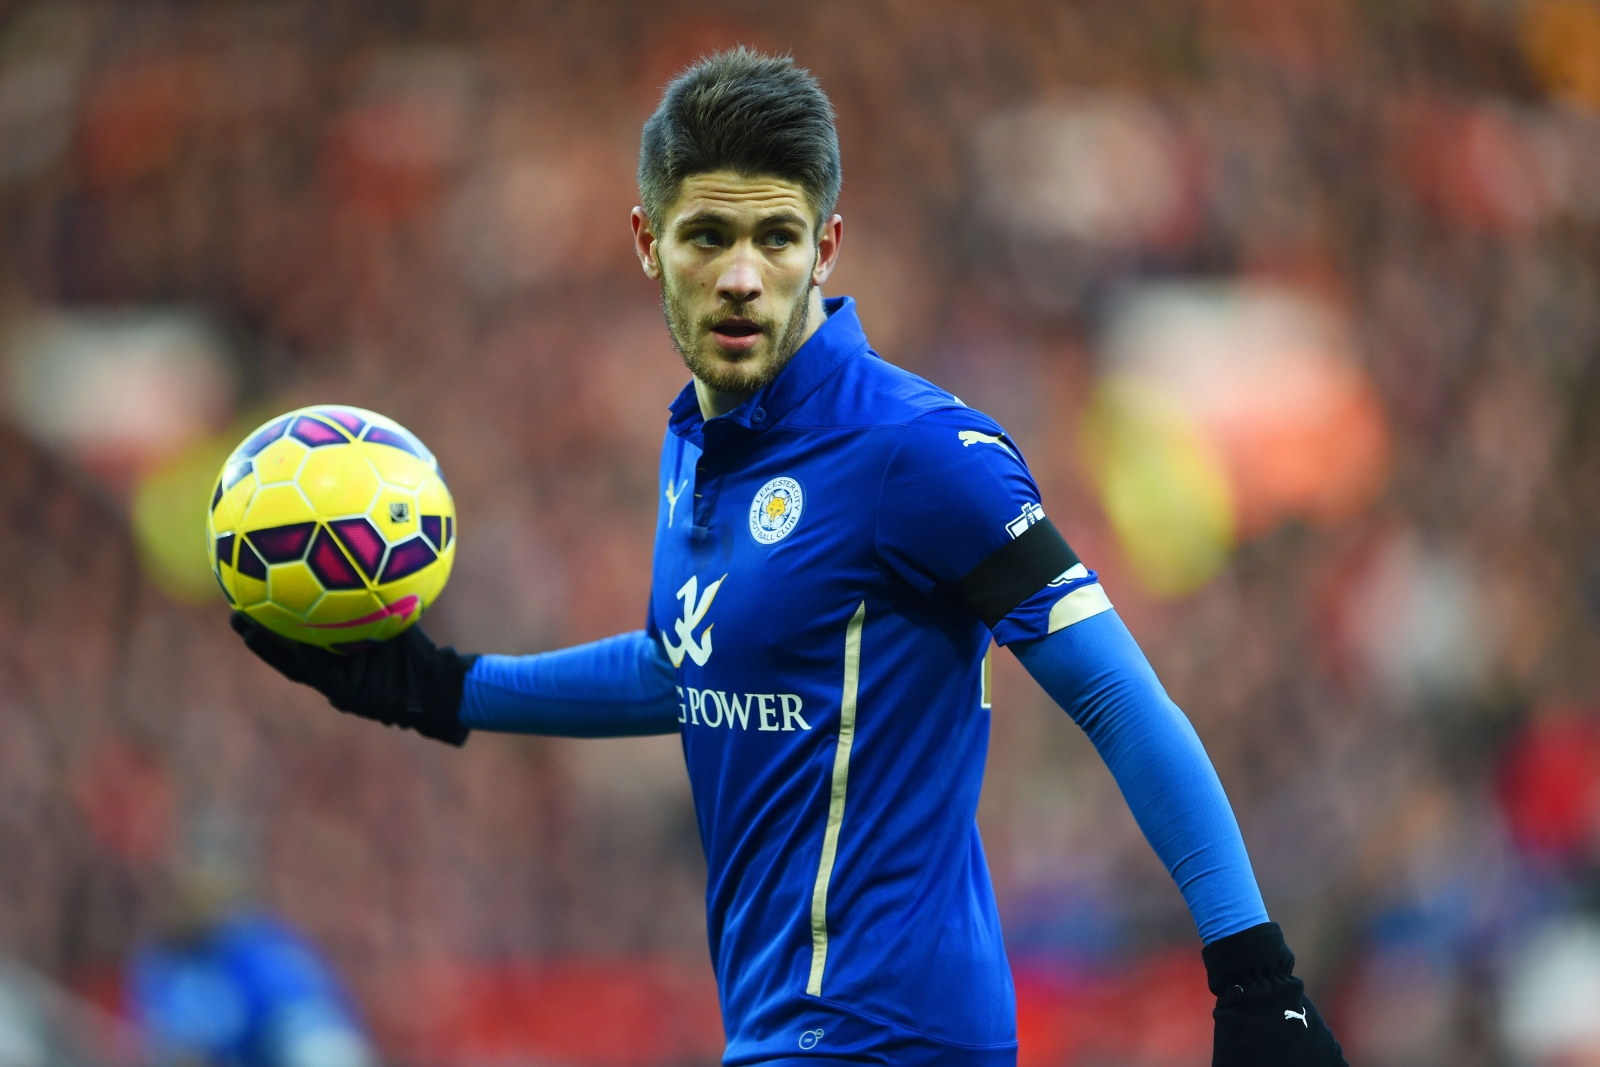 Leicester Striker Andrej Kramaric Confirms He Rejected Chelsea Over Loan Fears